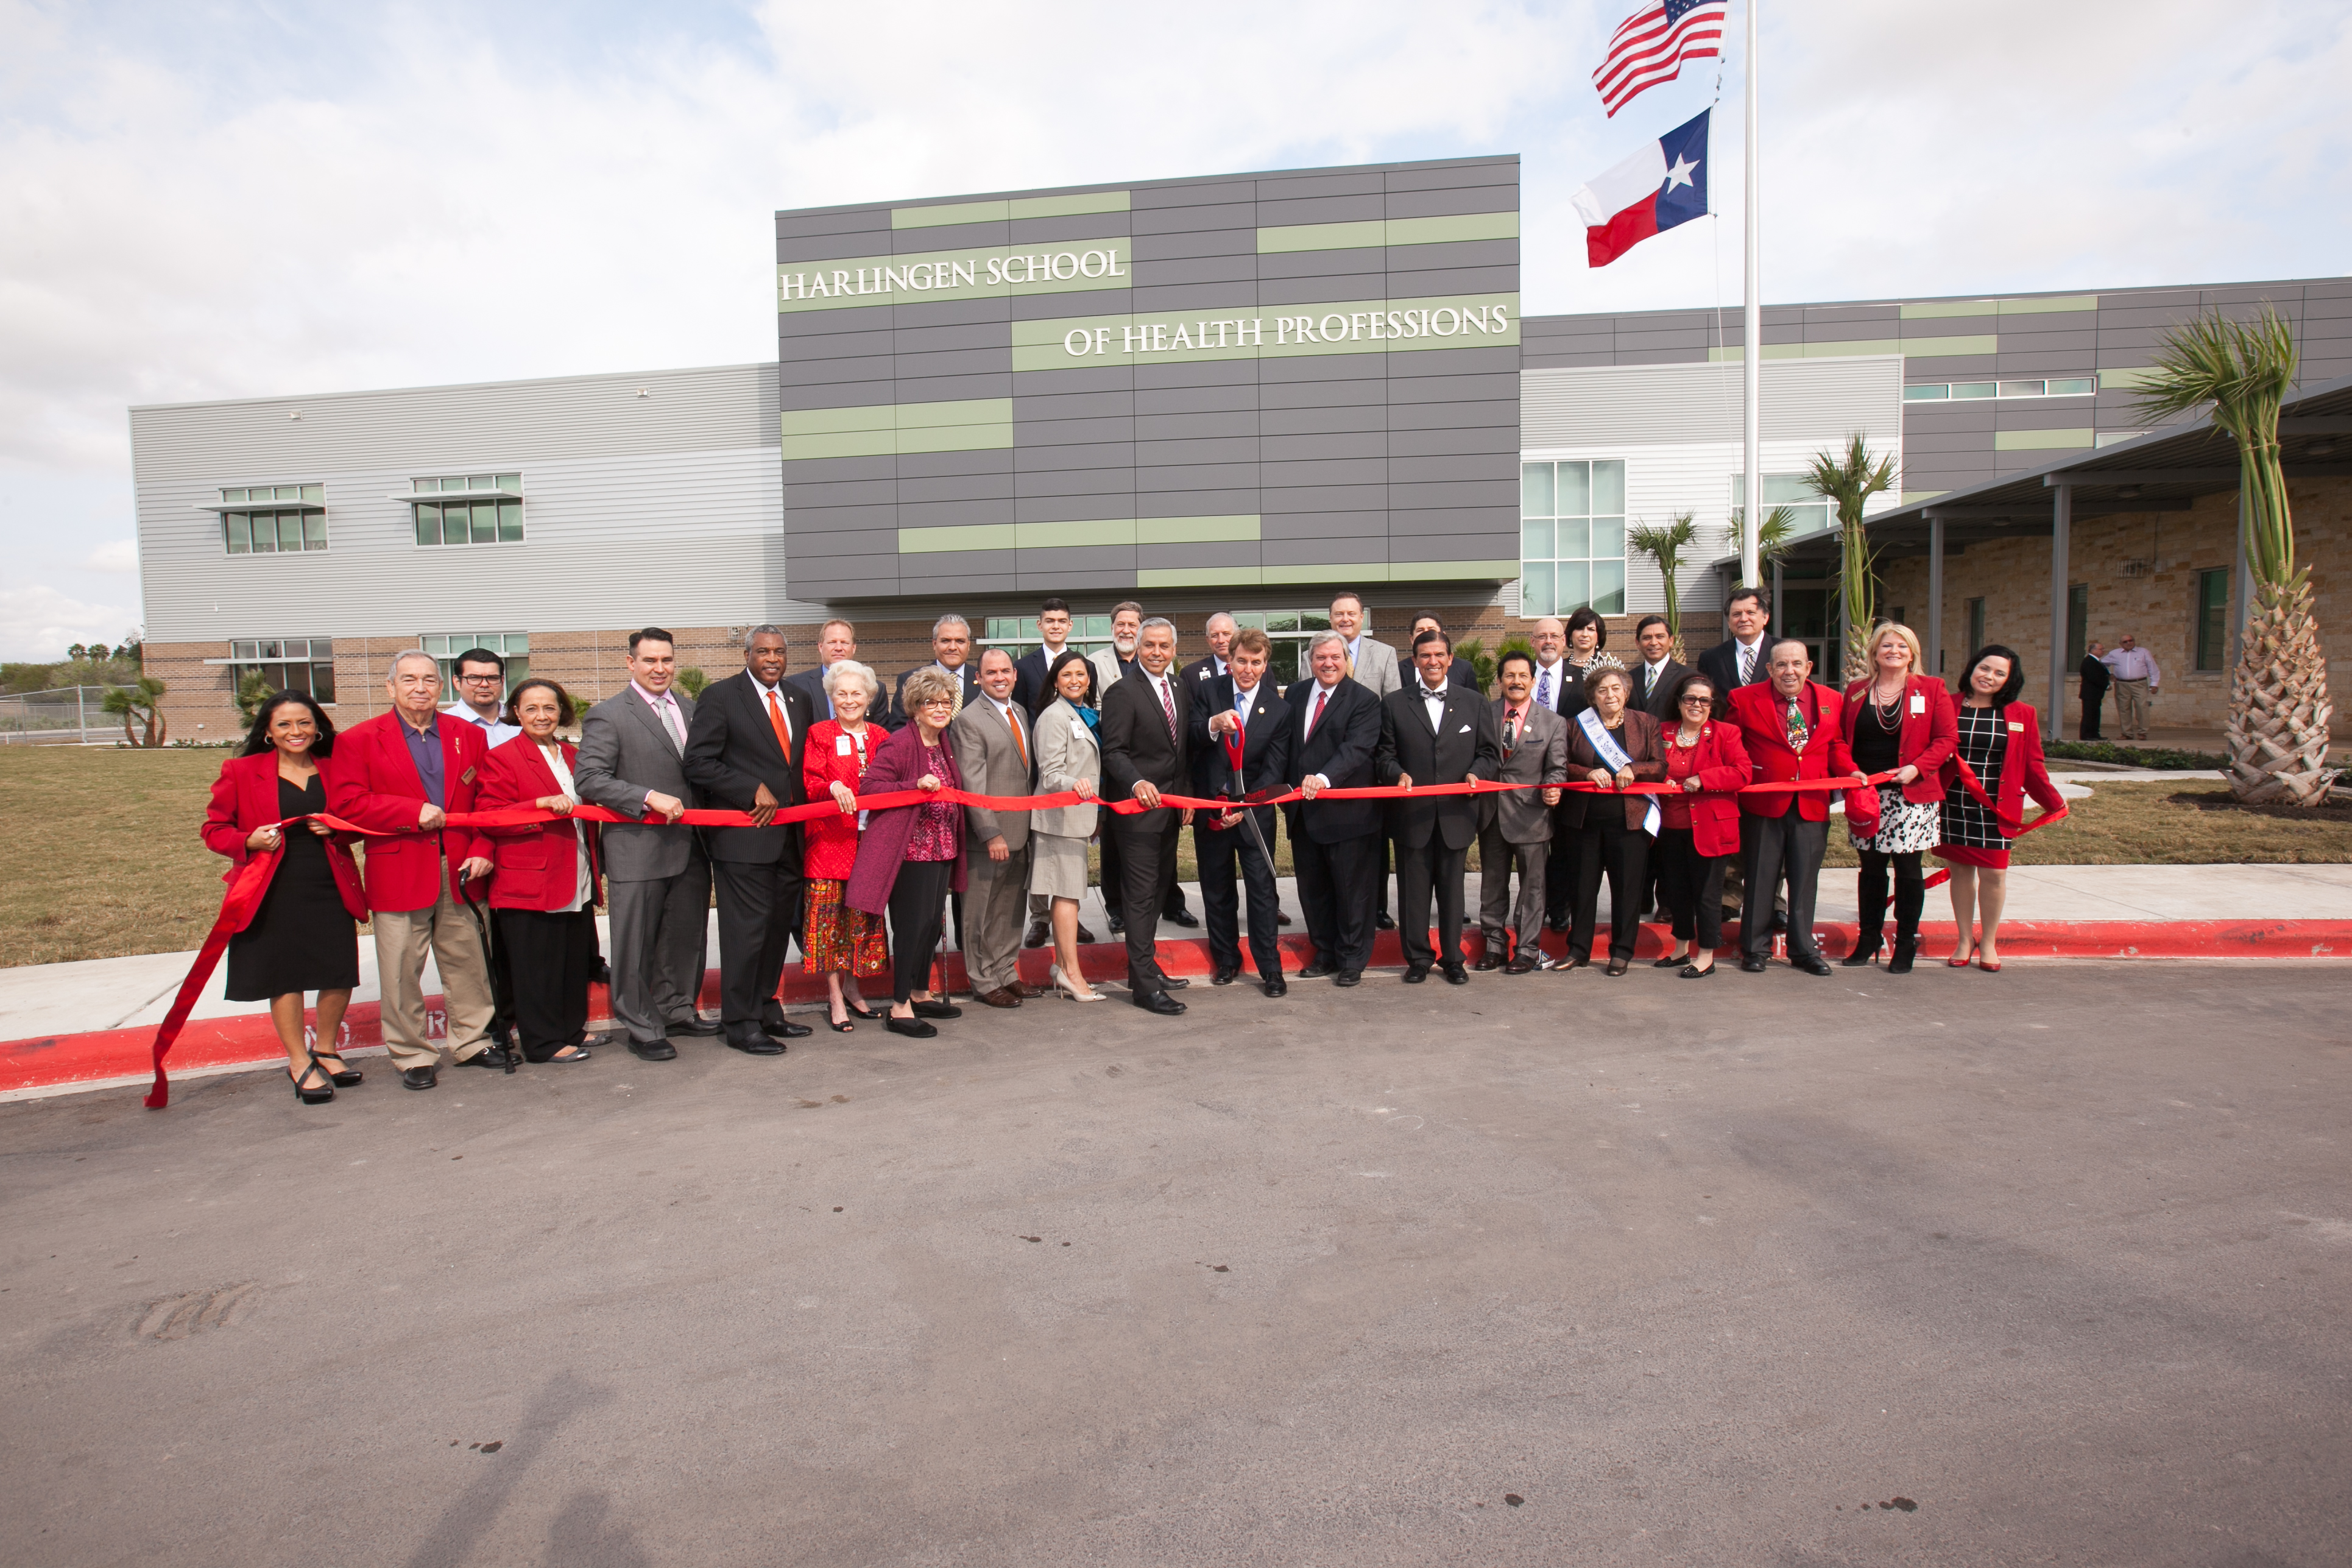 Continuing to make history: HCISD marks beginnings of medical careers with HSHP Ribbon Cutting